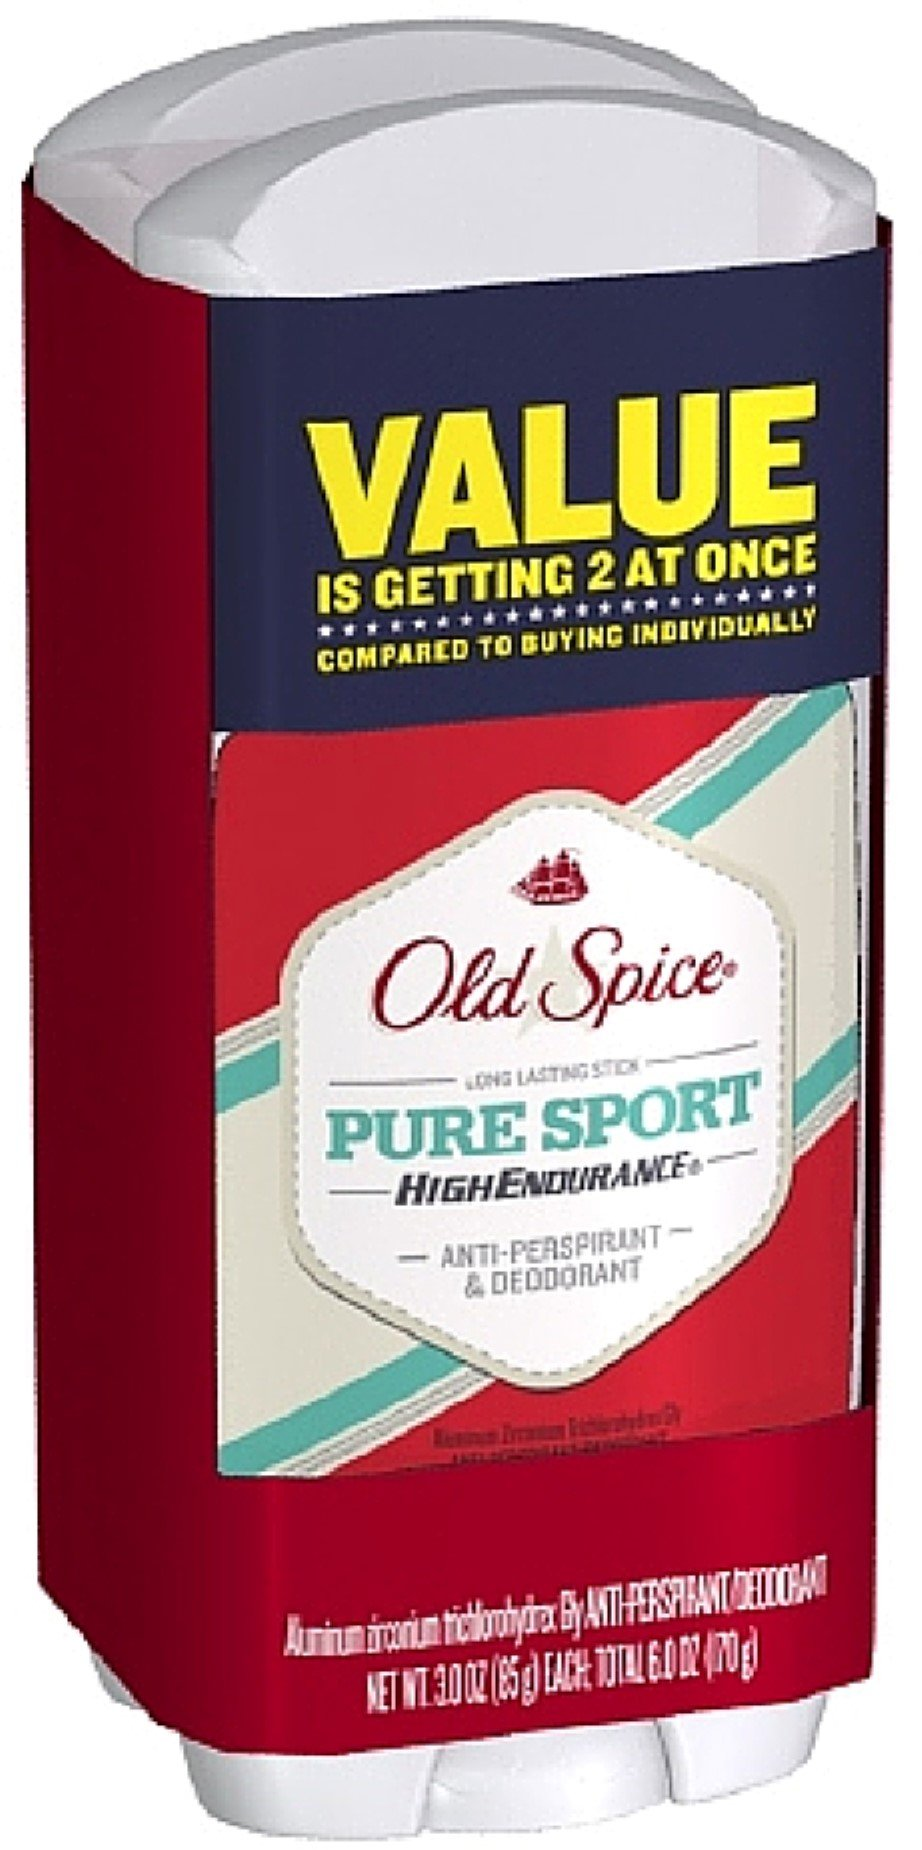 Old Spice High Endurance Antiperspirant & Deodorant, Twin Pack, Pure Sport 3 oz, 2 ea (Pack of 10)